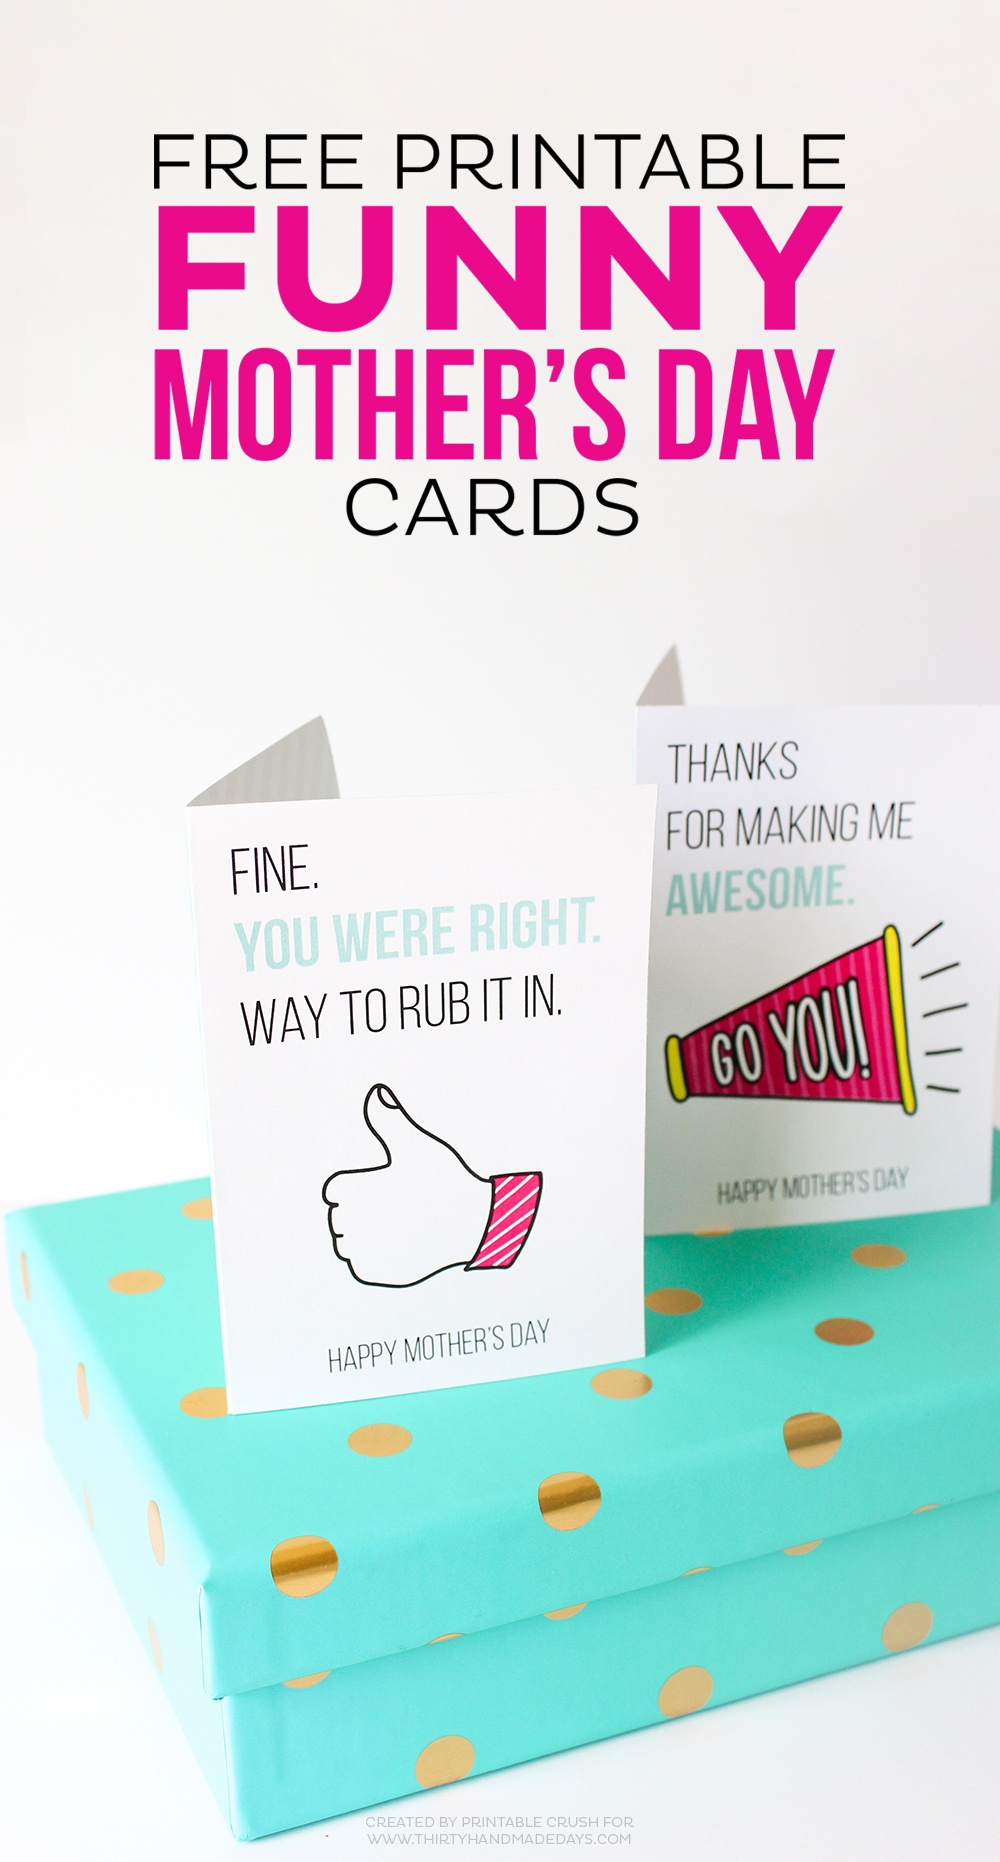 Printable Mother's Day Cards - Free Printable Father's Day Card From Wife To Husband